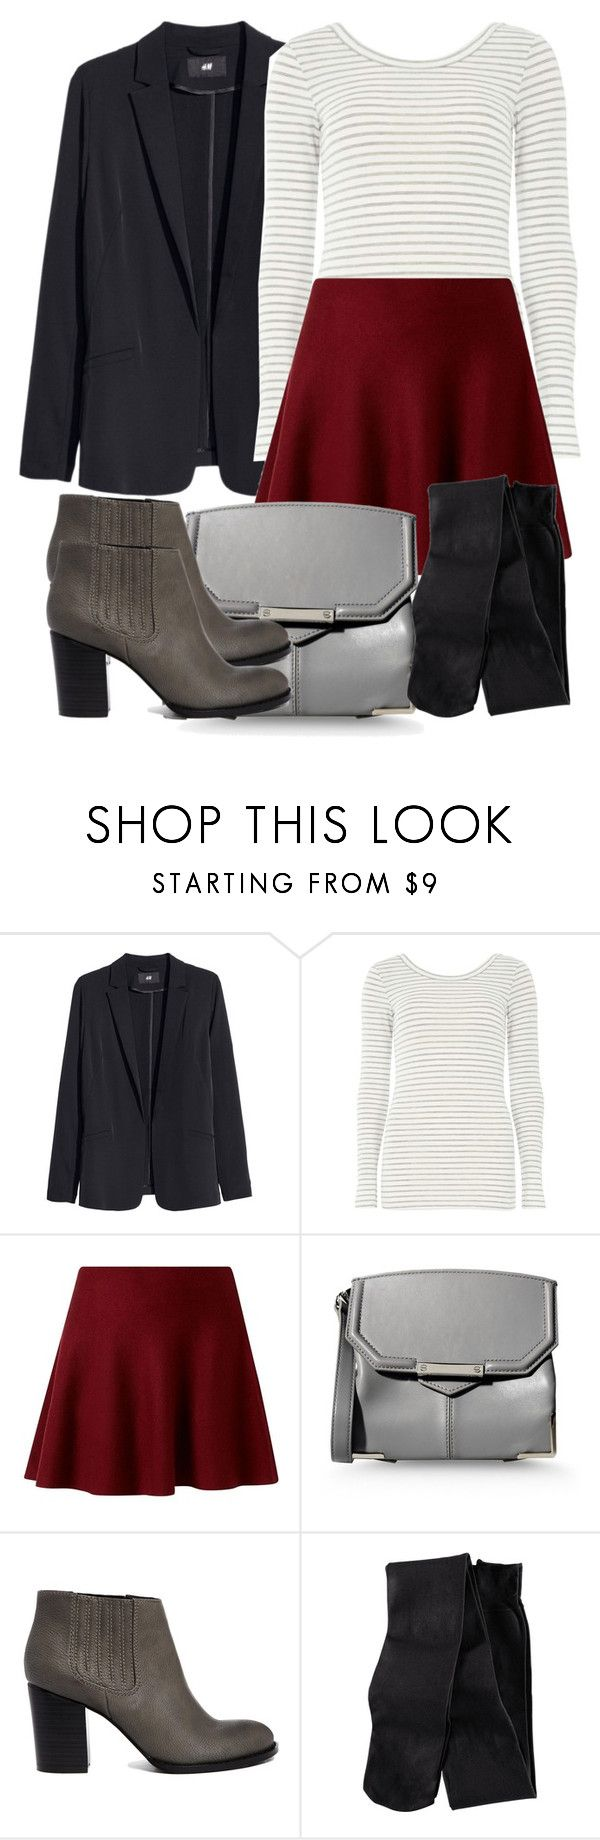 Allison Inspired UK Friendly Outfit with a Blazer by veterization on Polyvore featuring Dorothy Perkins, H&M, ASOS and Alexander Wang